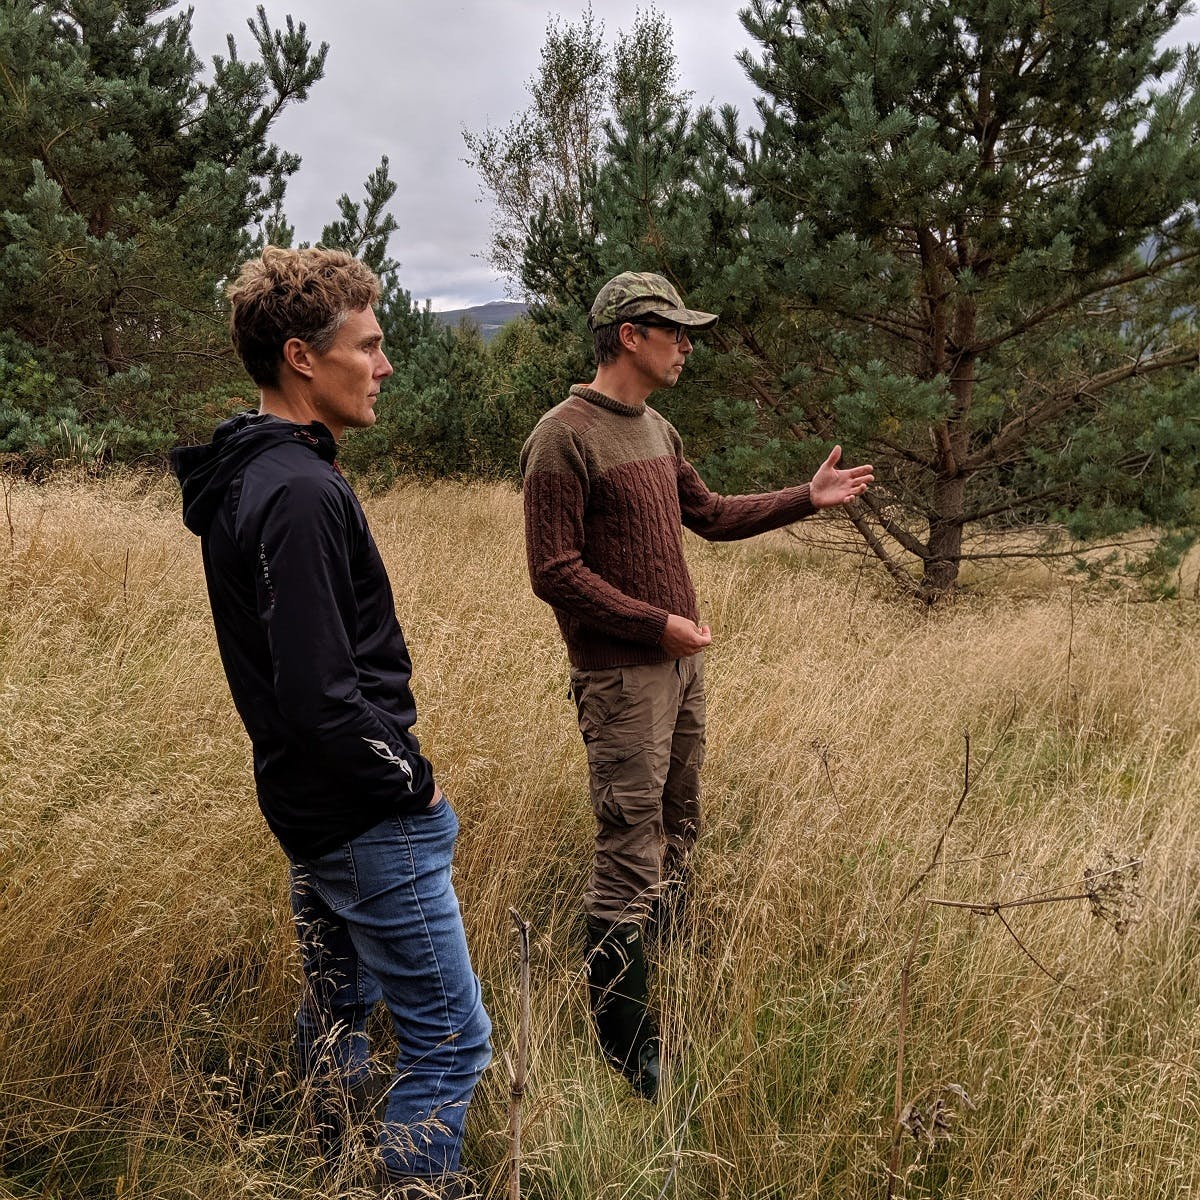 Matt ,Mossy Earth's co-founder, speaking about a successful rewilding project with Duncan, an expert fishing guide and advocate for land management reform, in the scottish highlands.